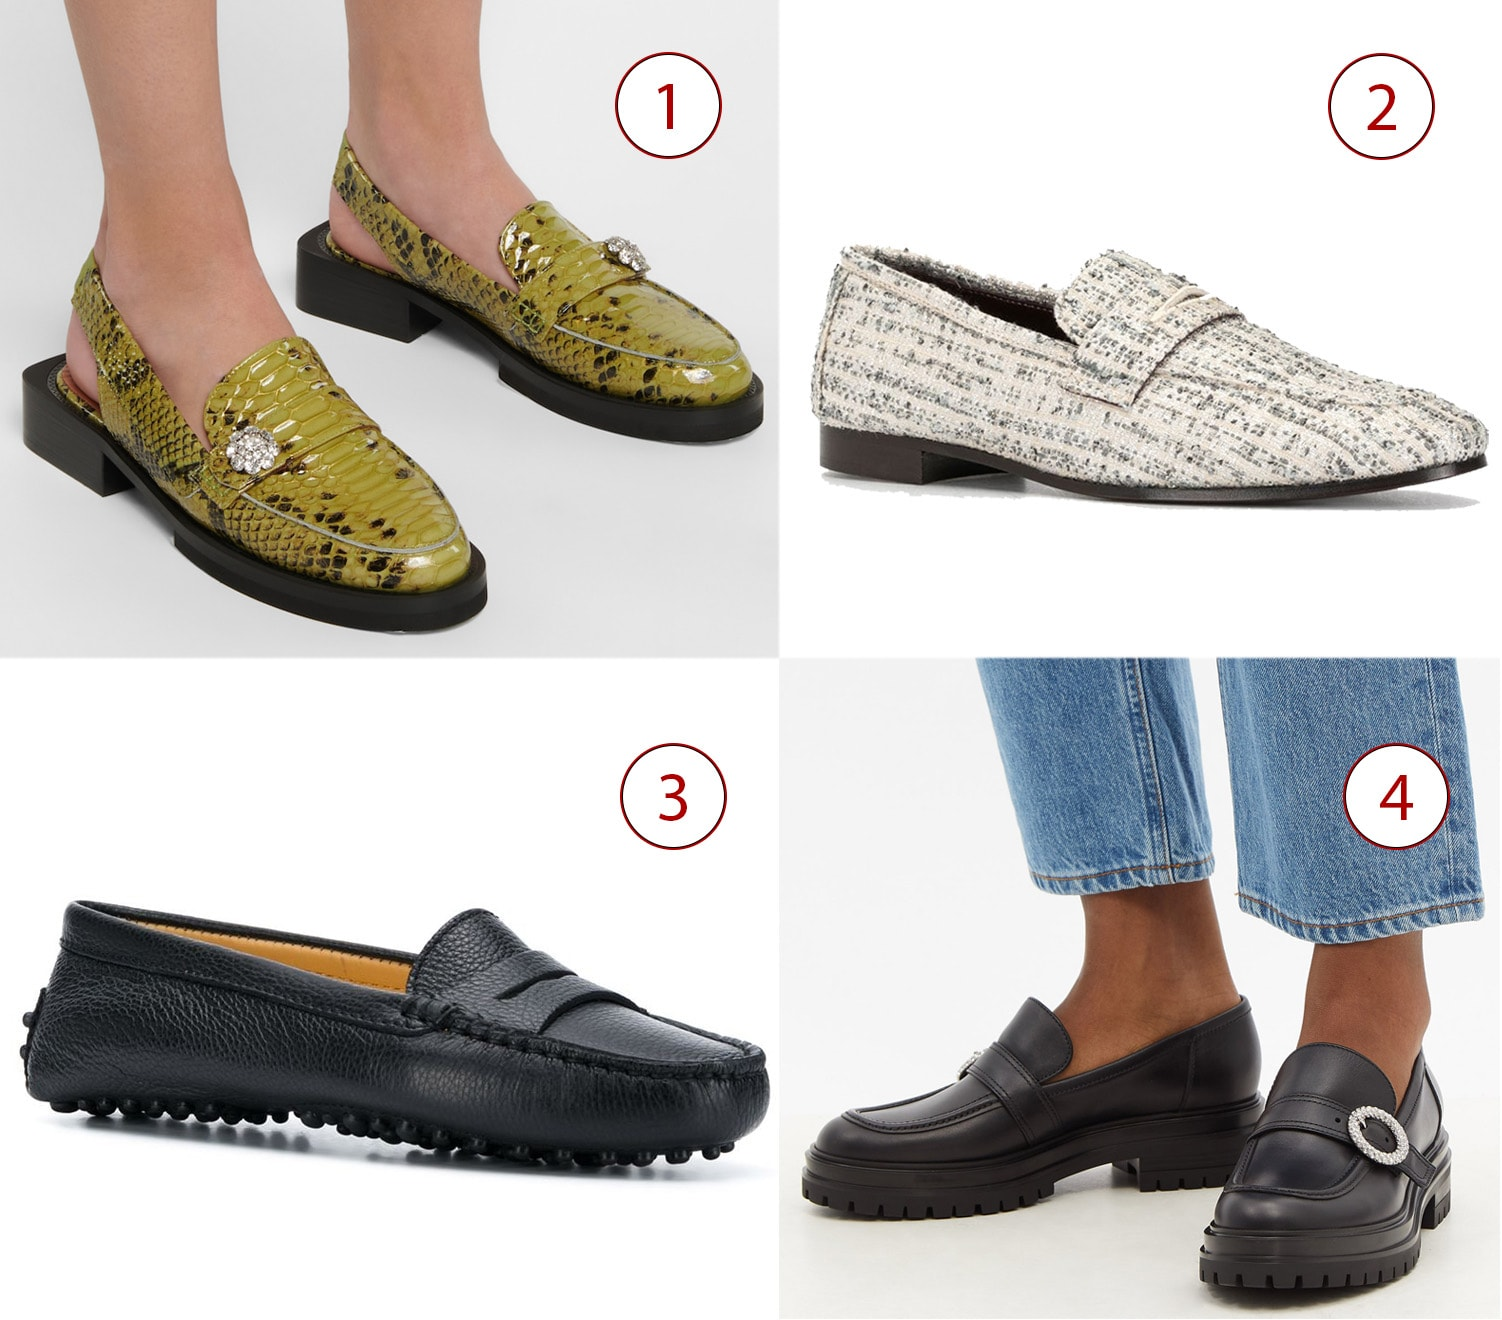 1. Ganni Snake-effect leather slingback loafers, 2. Bougeotte flat tweed loafers, 3. Scarosso Sofia loafers, 4. Gianvito Rossi Crystal-buckle leather loafers